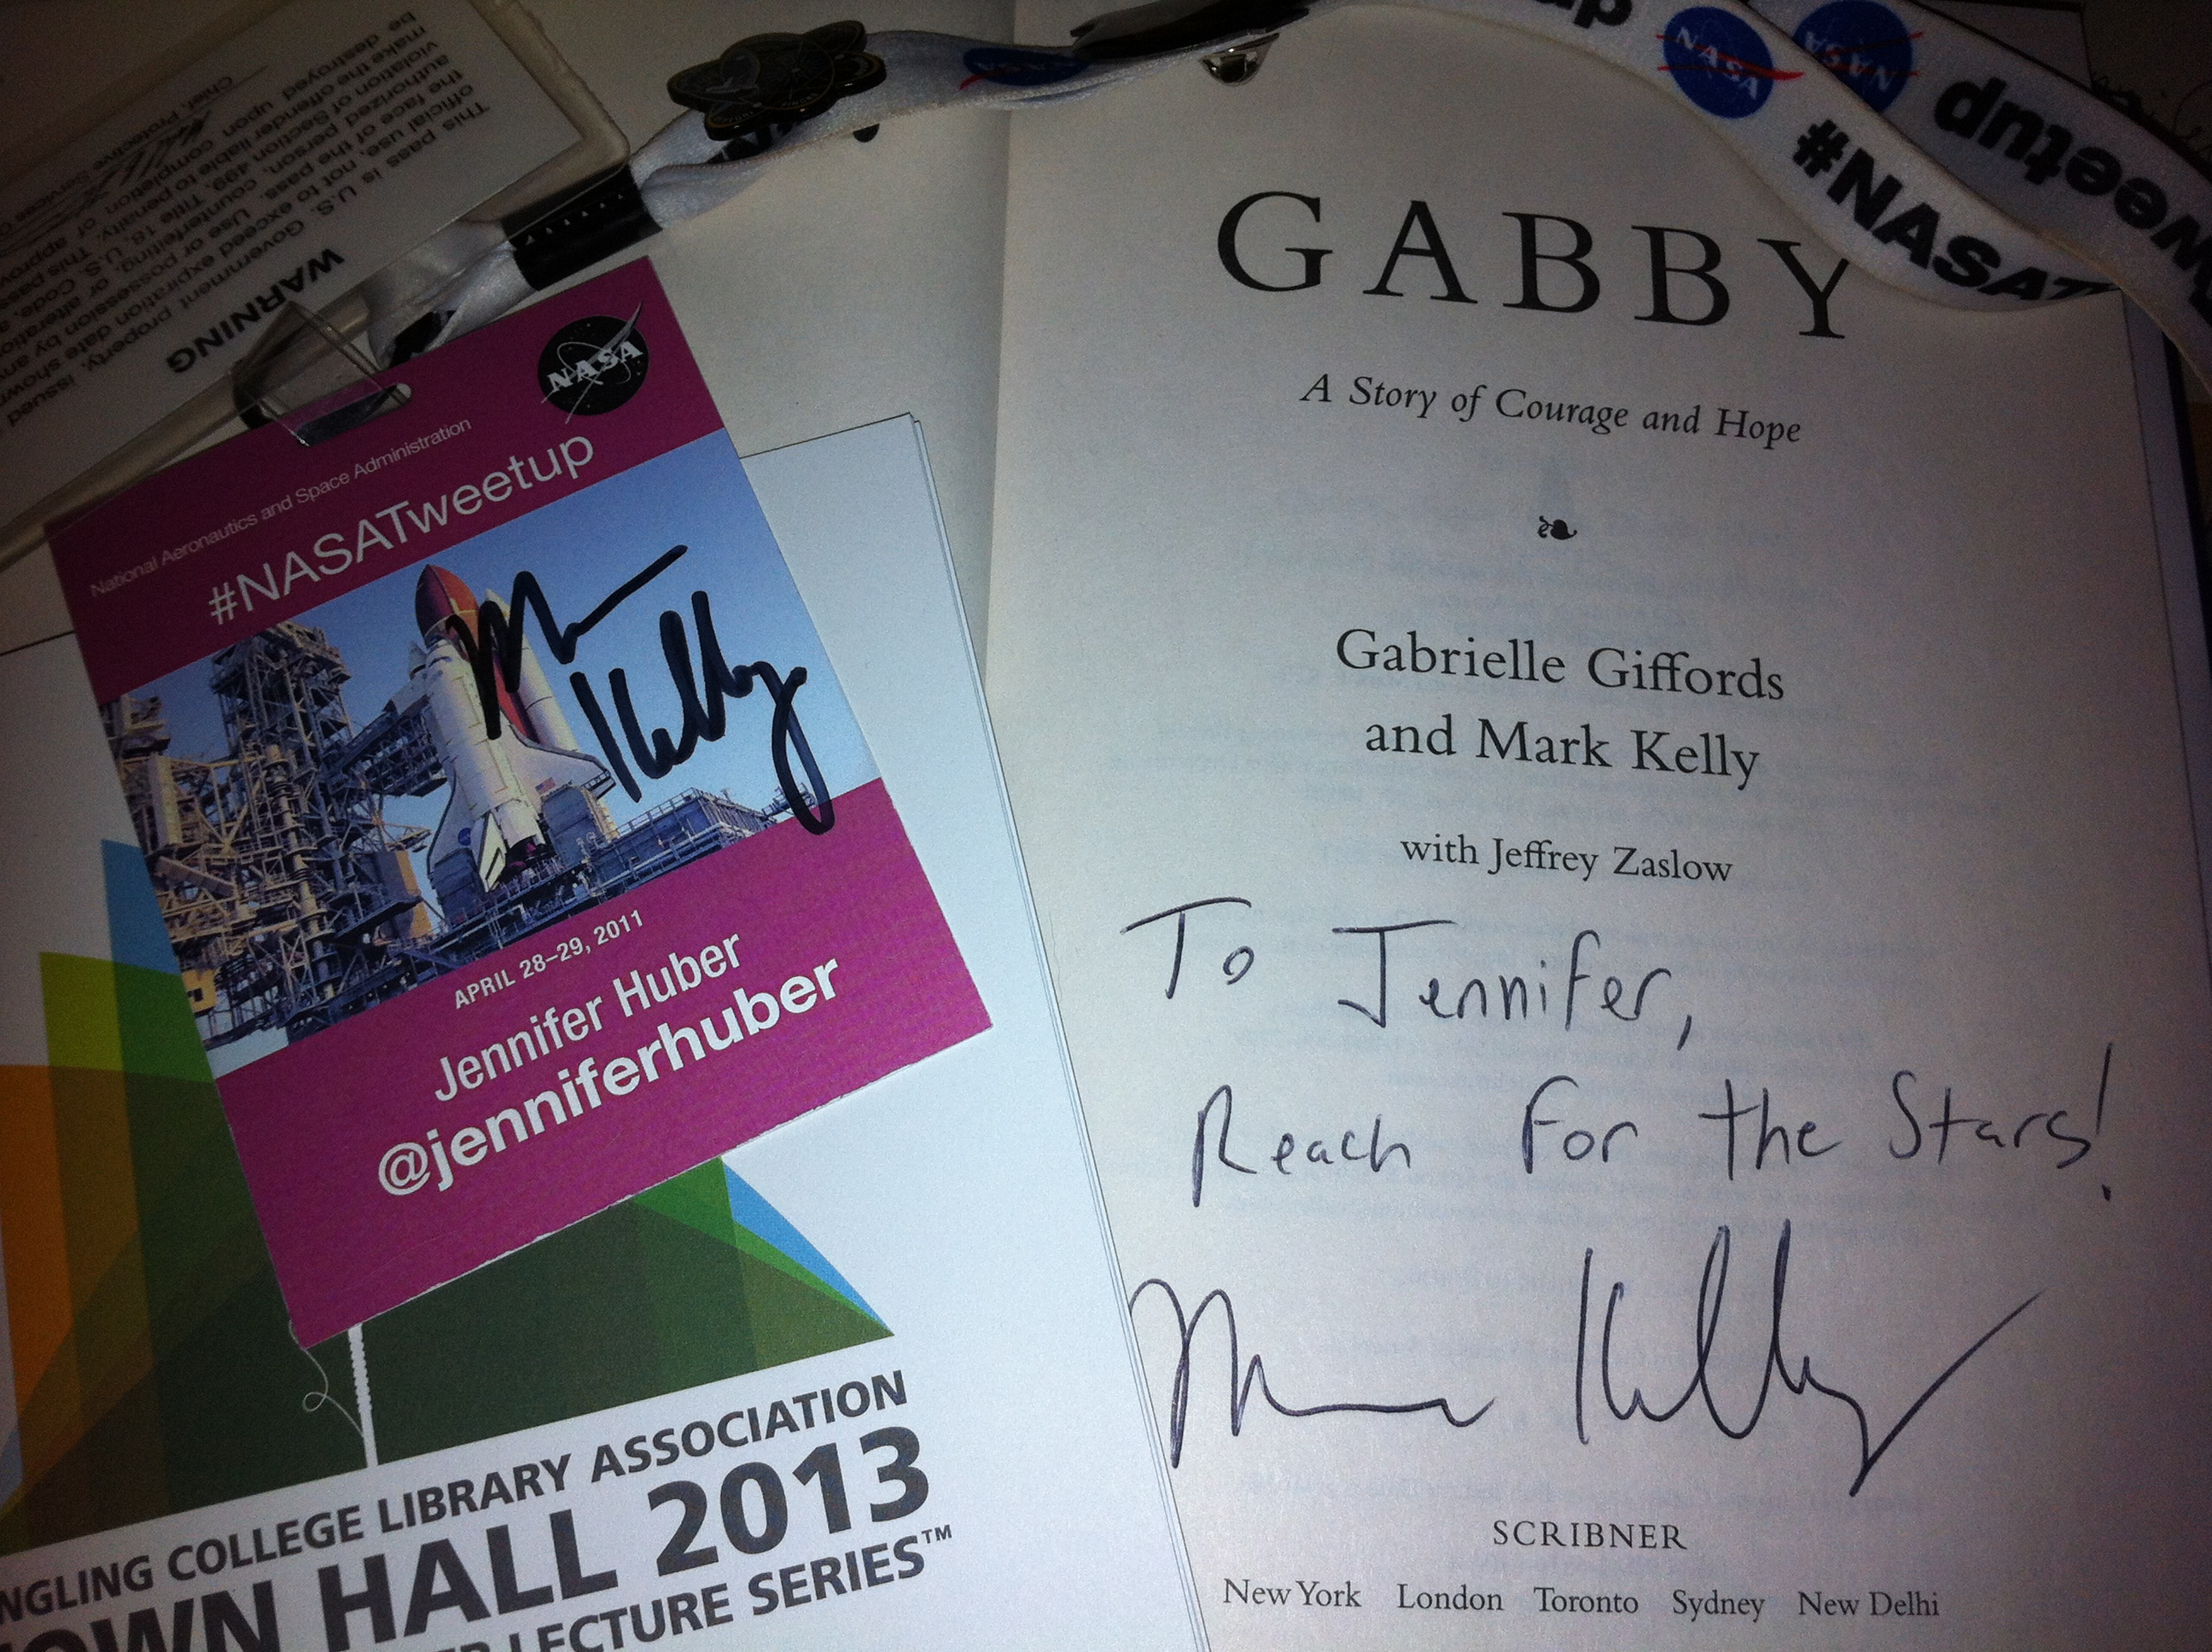 "*SQUEE!* Capt. Mark Kelly Signed his Book ""Gabby"" and My #NASATweetup Badge!"